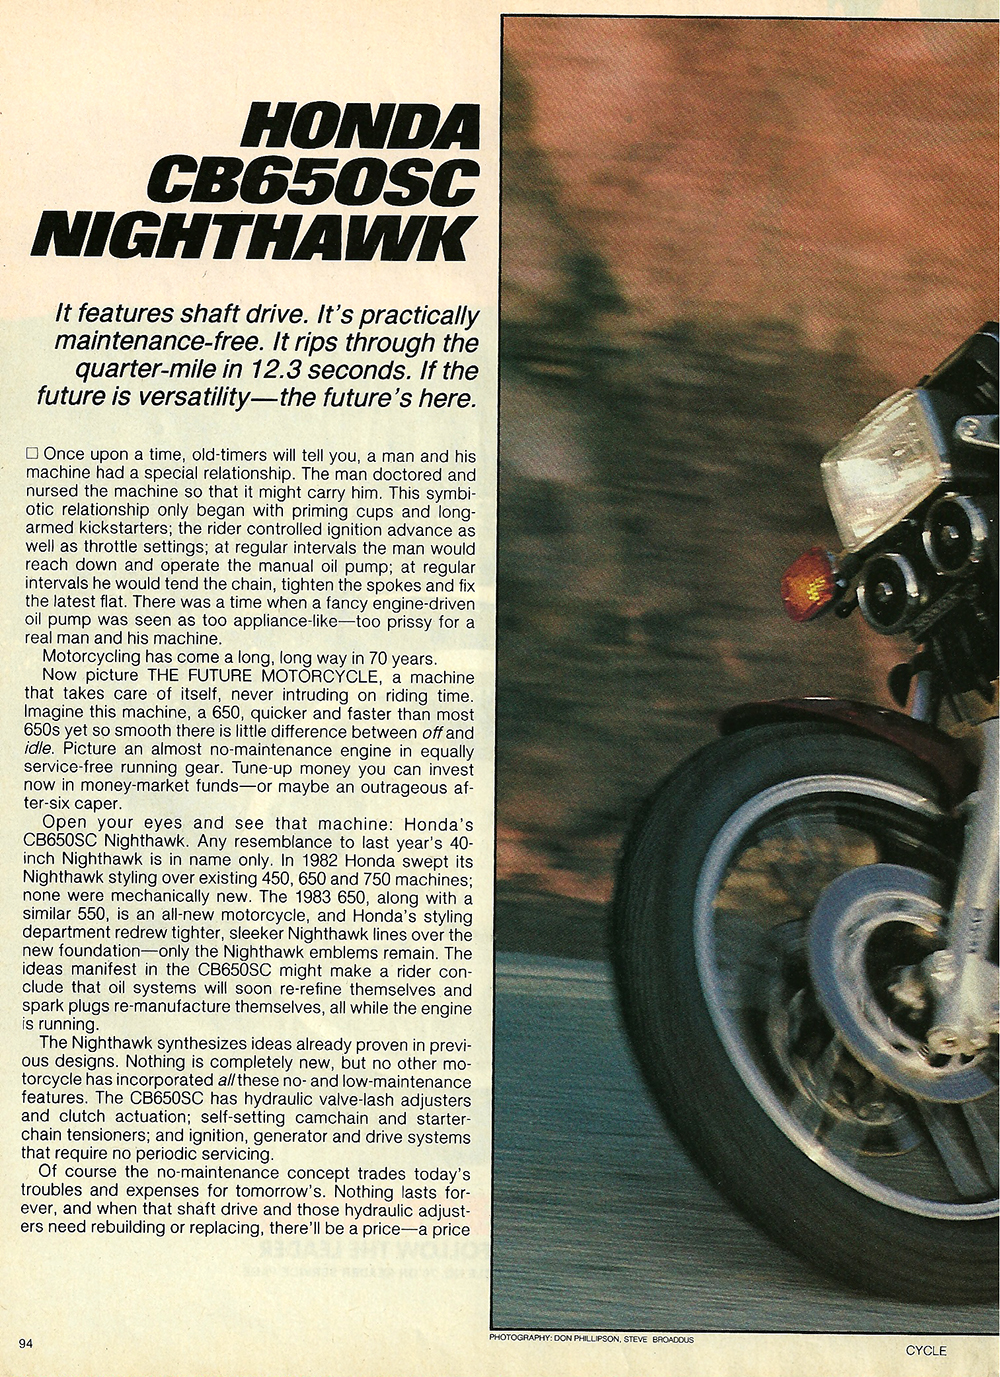 The other 1983 Honda CB650SC Nighthawk road test — Ye Olde